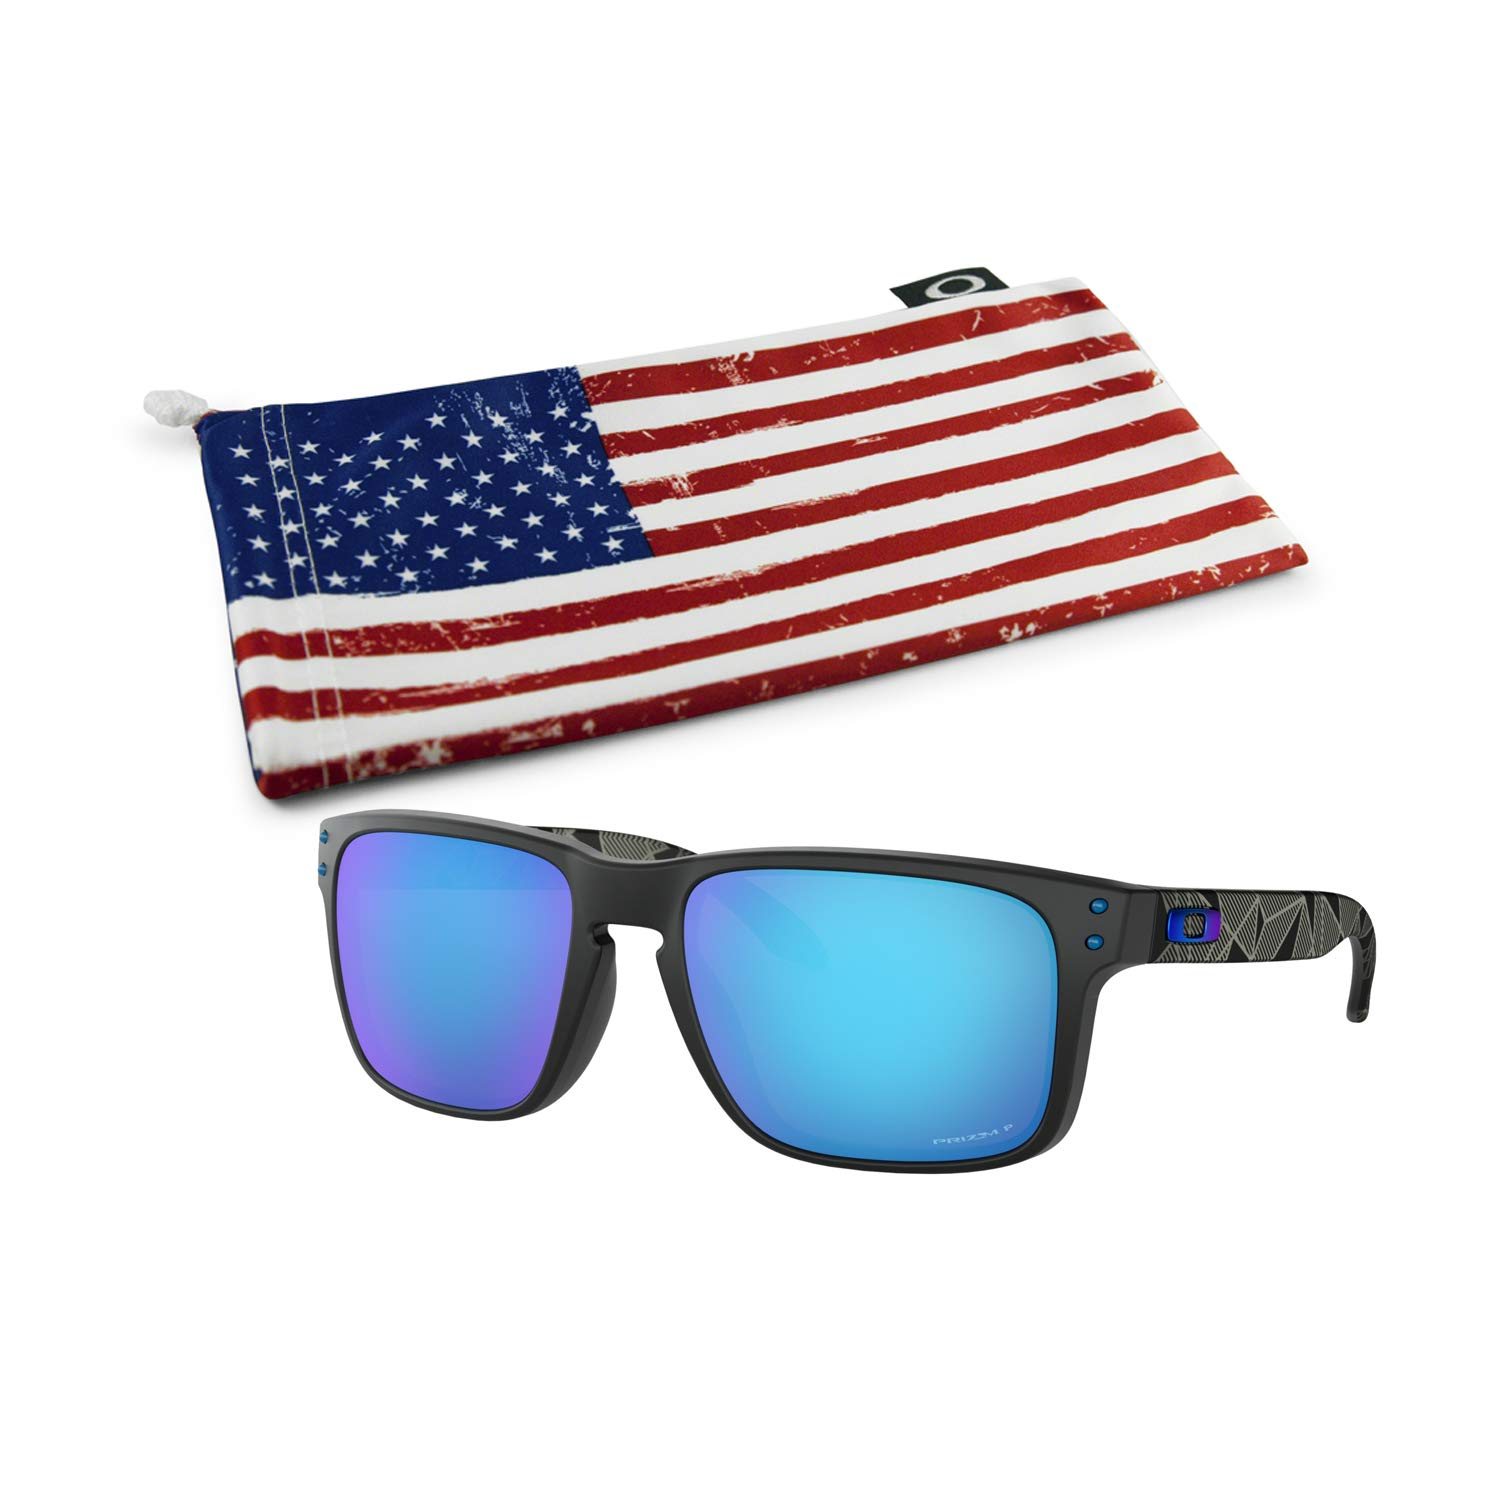 Oakley Holbrook Sunglasses (Matte Black Prizmatic Frame, Prizm Sapphire Polarized Lens) with Country Flag Microbag by Oakley